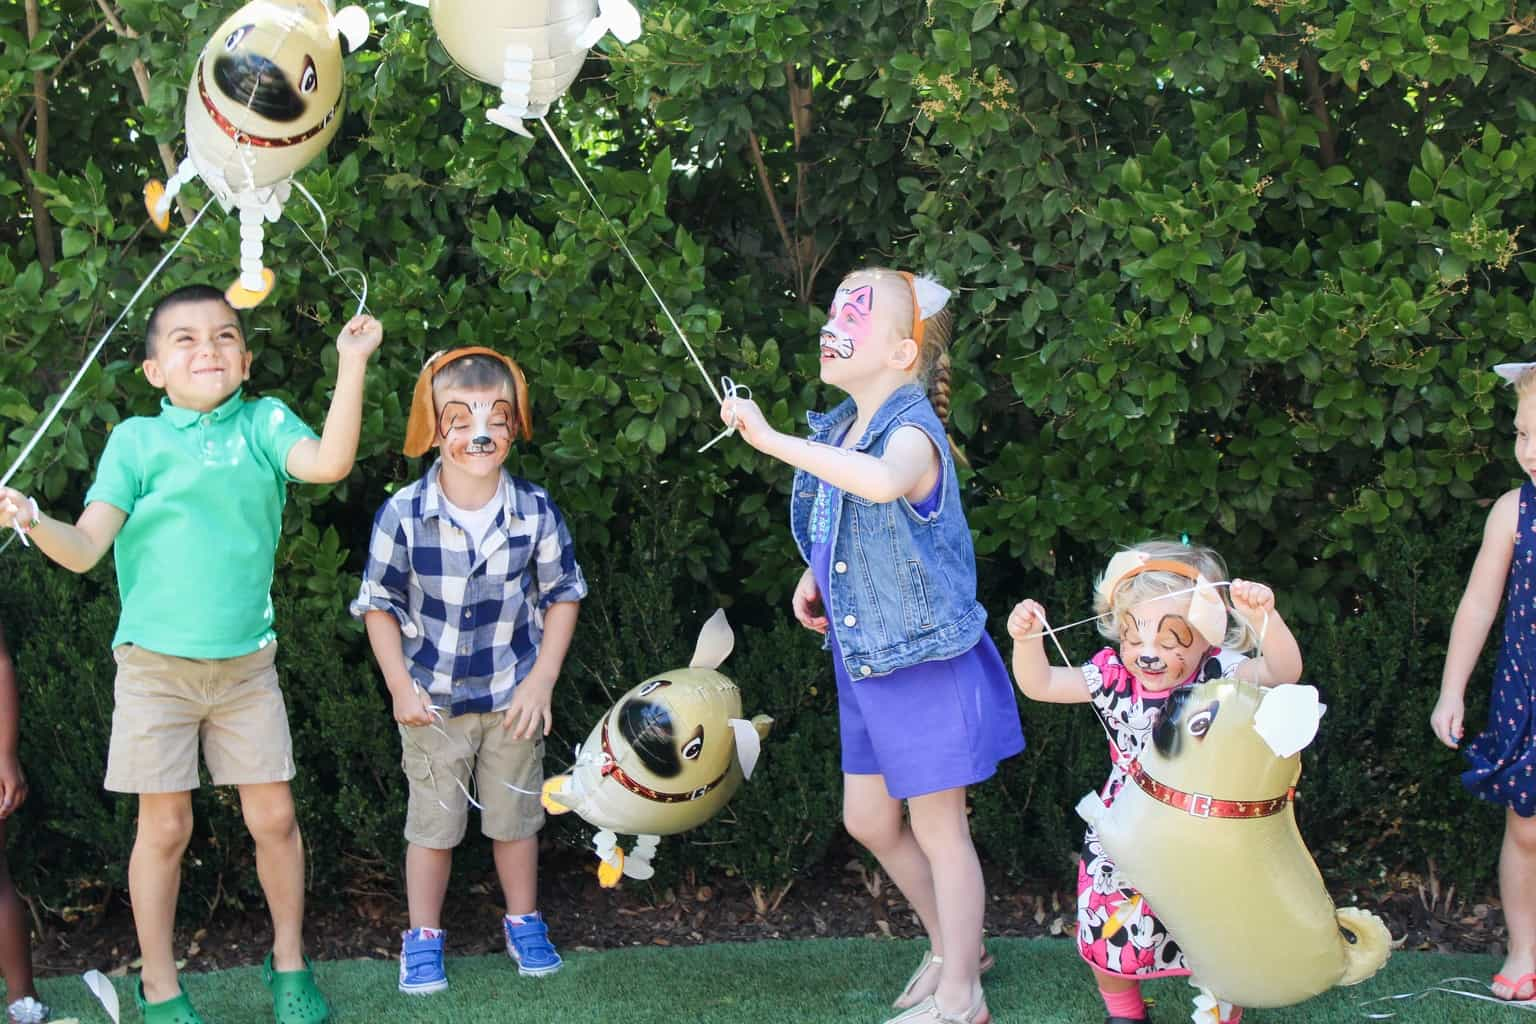 Are you planning a Disney Junior Puppy Dog Pals birthday party? Then check out out this list of of 10+ Unique Puppy Dog Pals Birthday Party Ideas for any occasion.